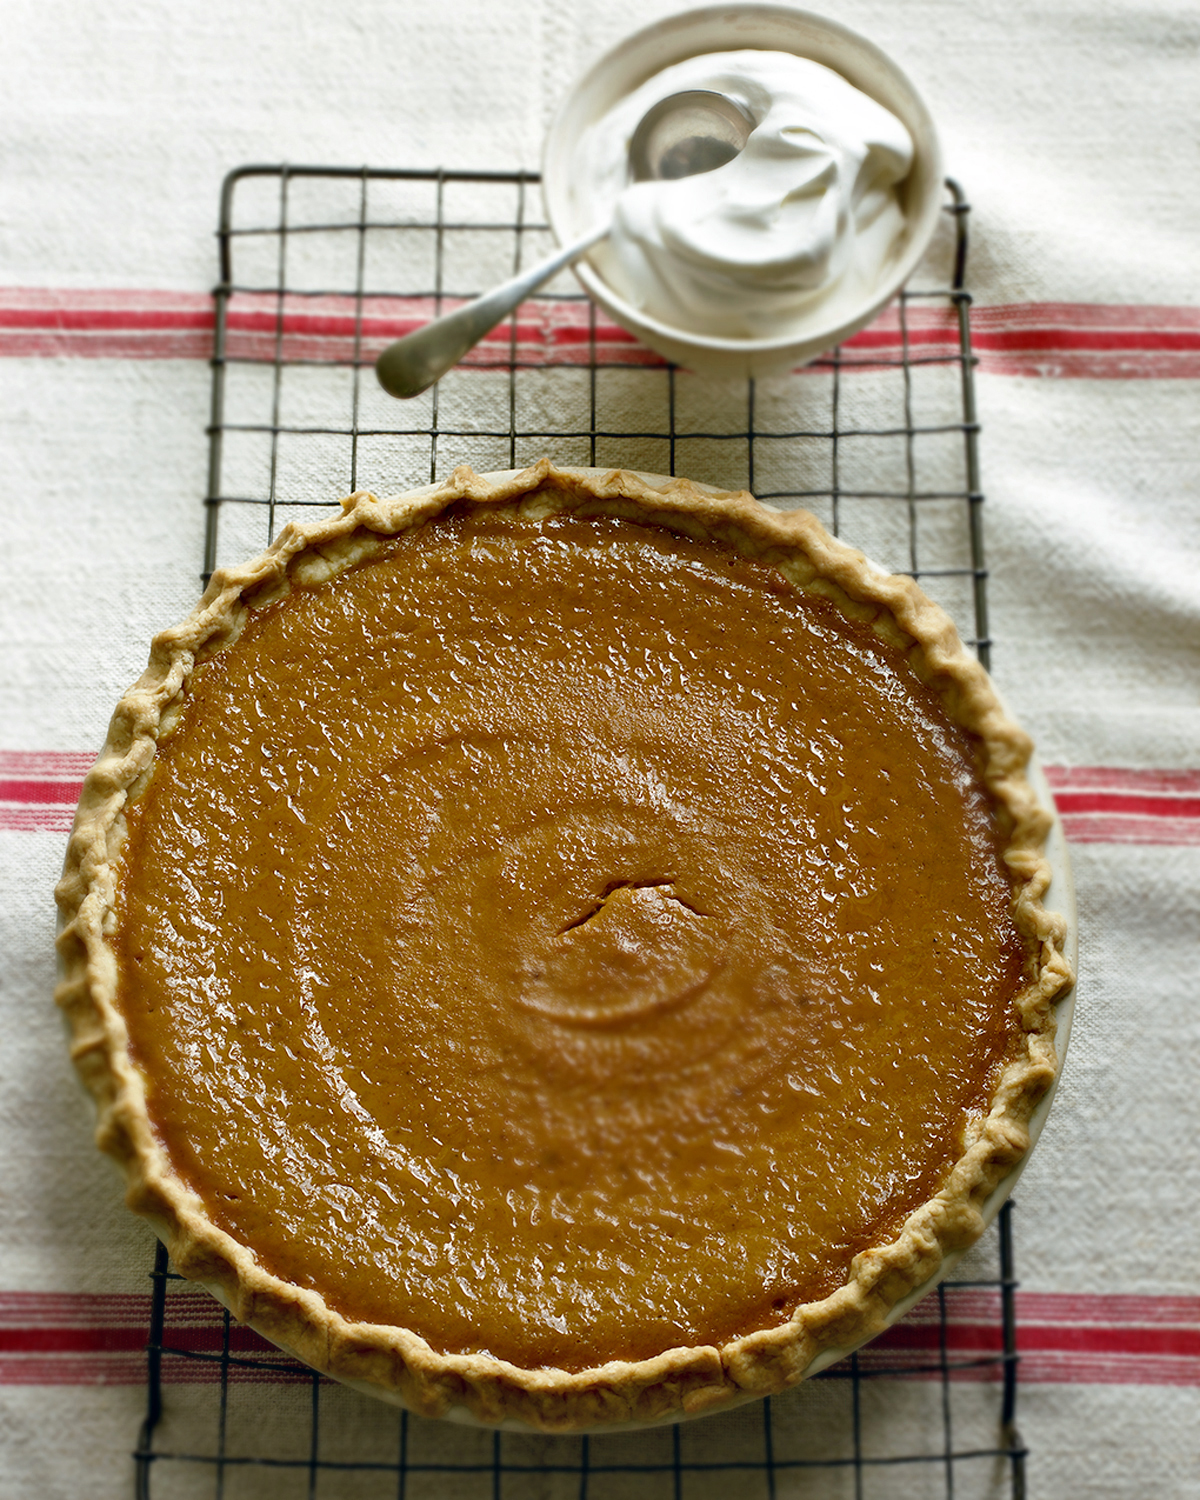 Pie is the Essential Thanksgiving Dessert, But Why?